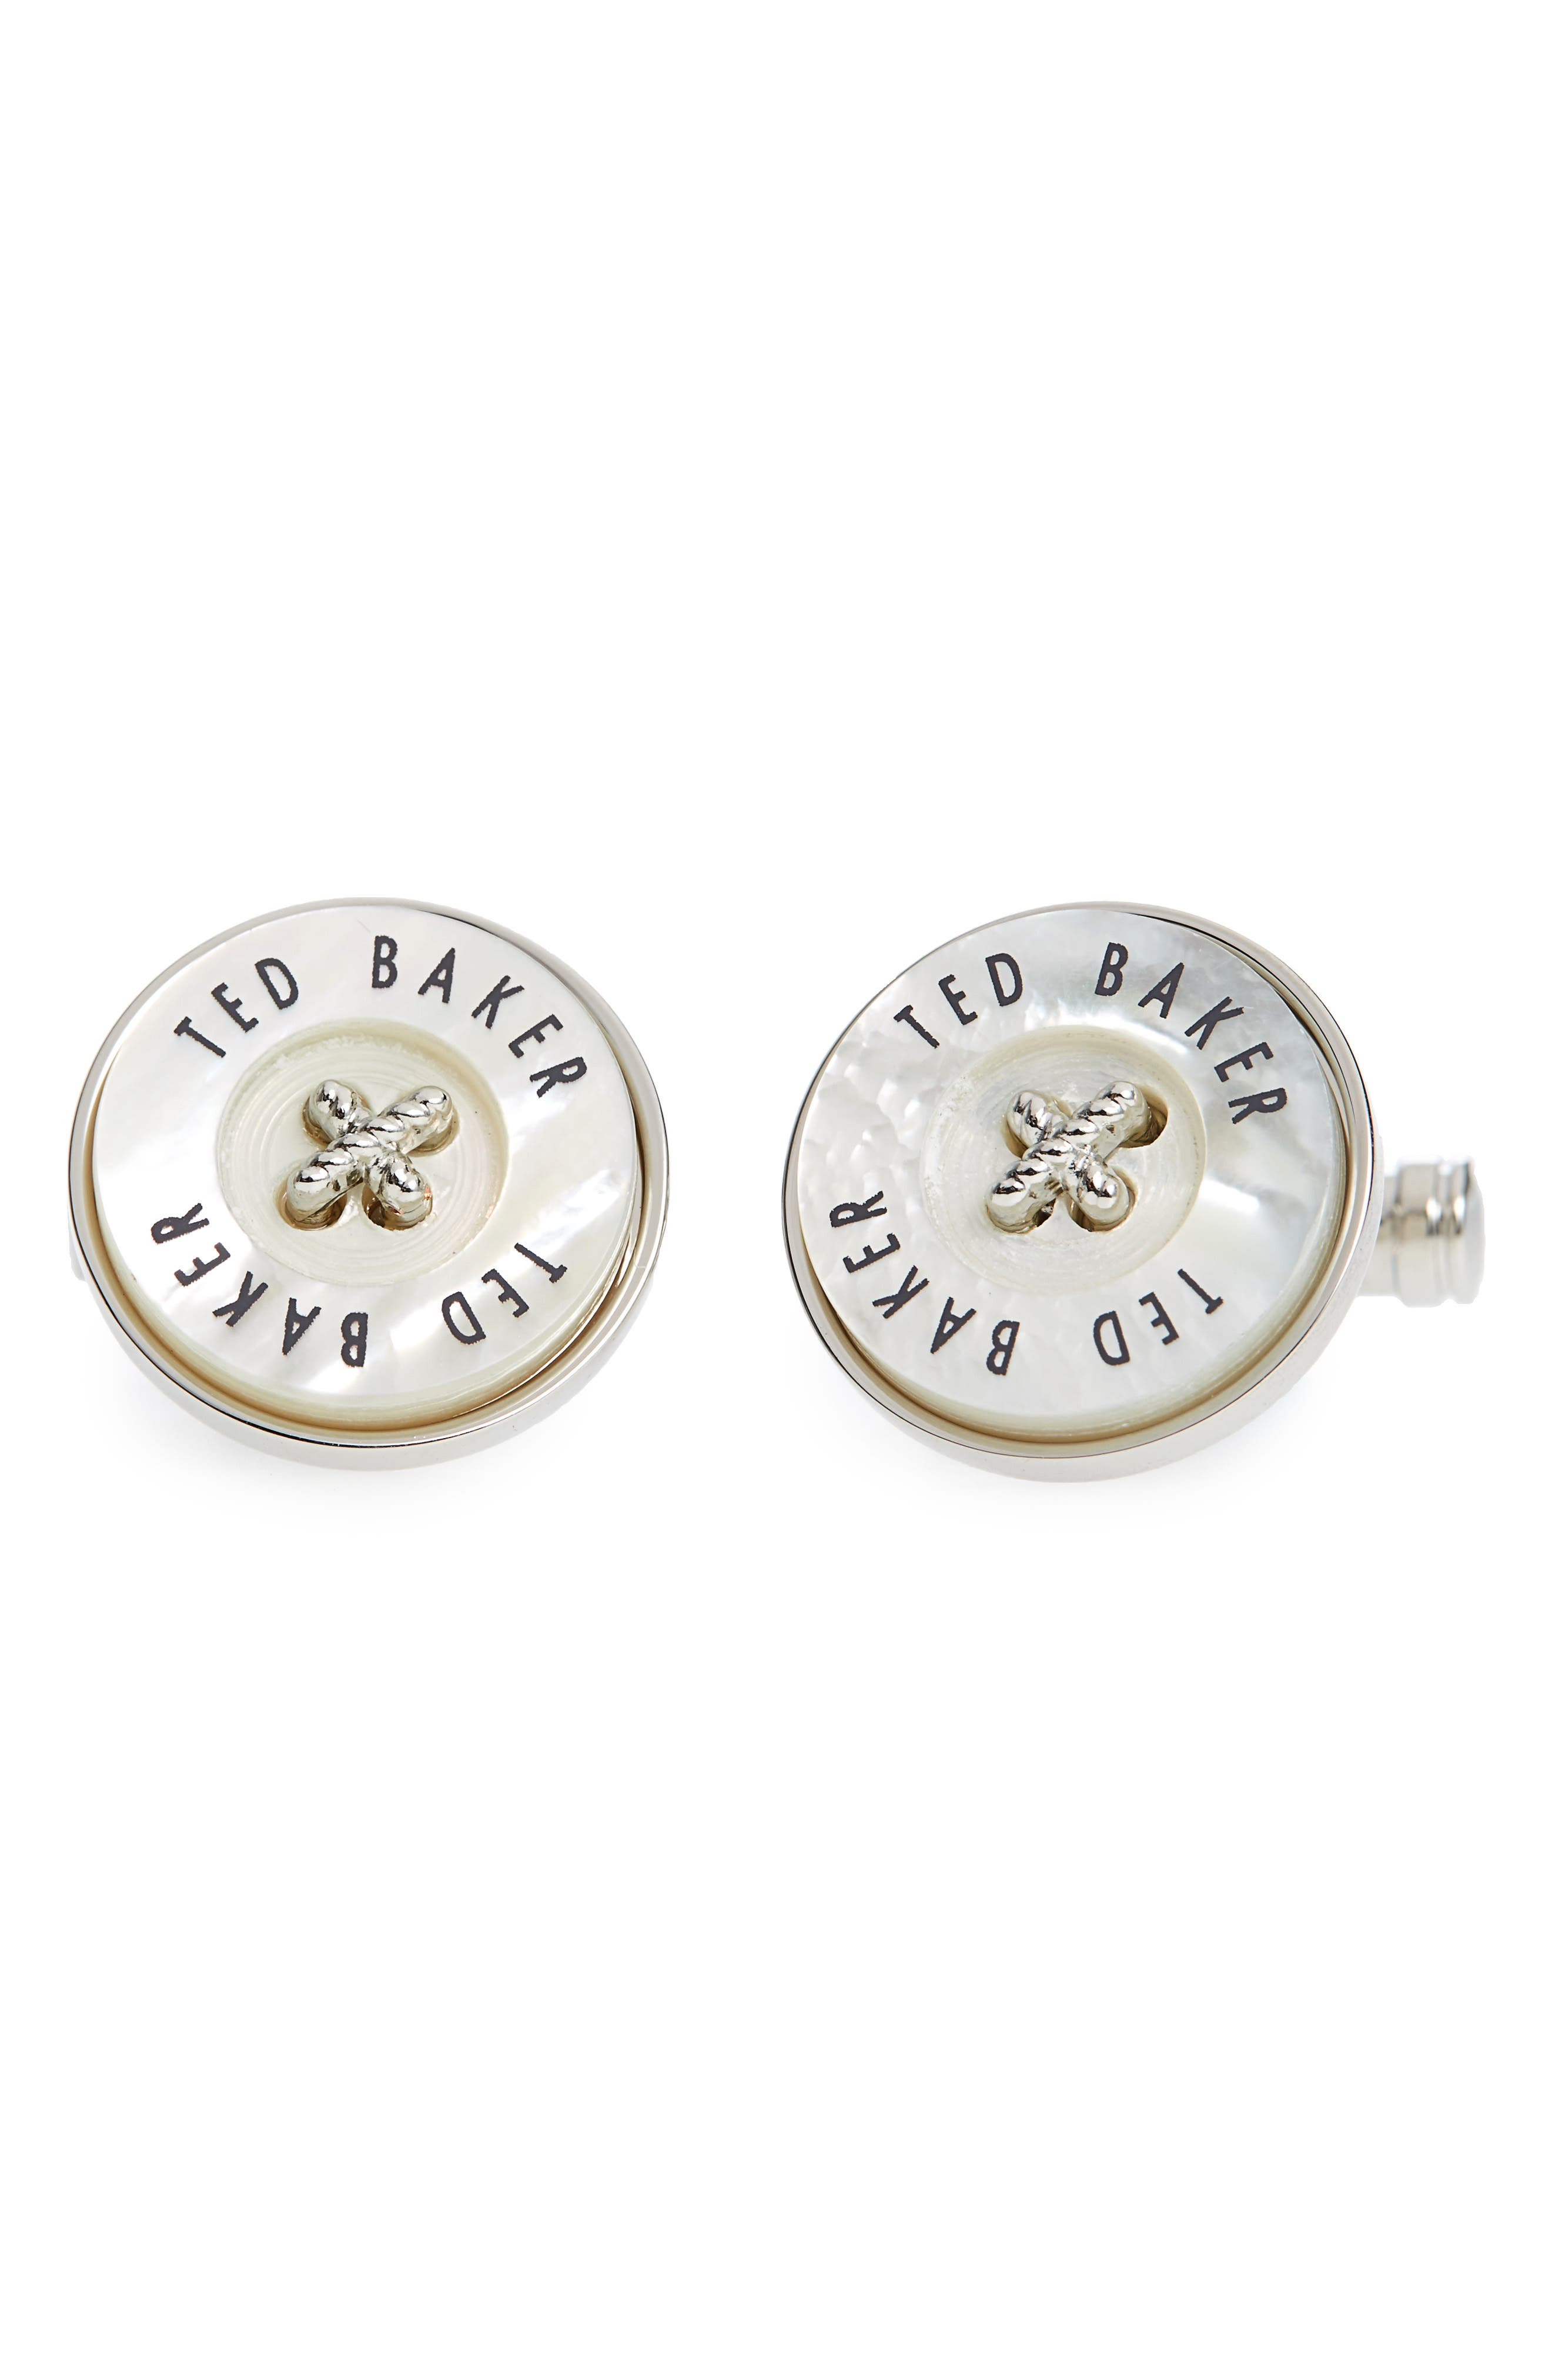 Main Image - Ted Baker London Sizzle Cuff Links